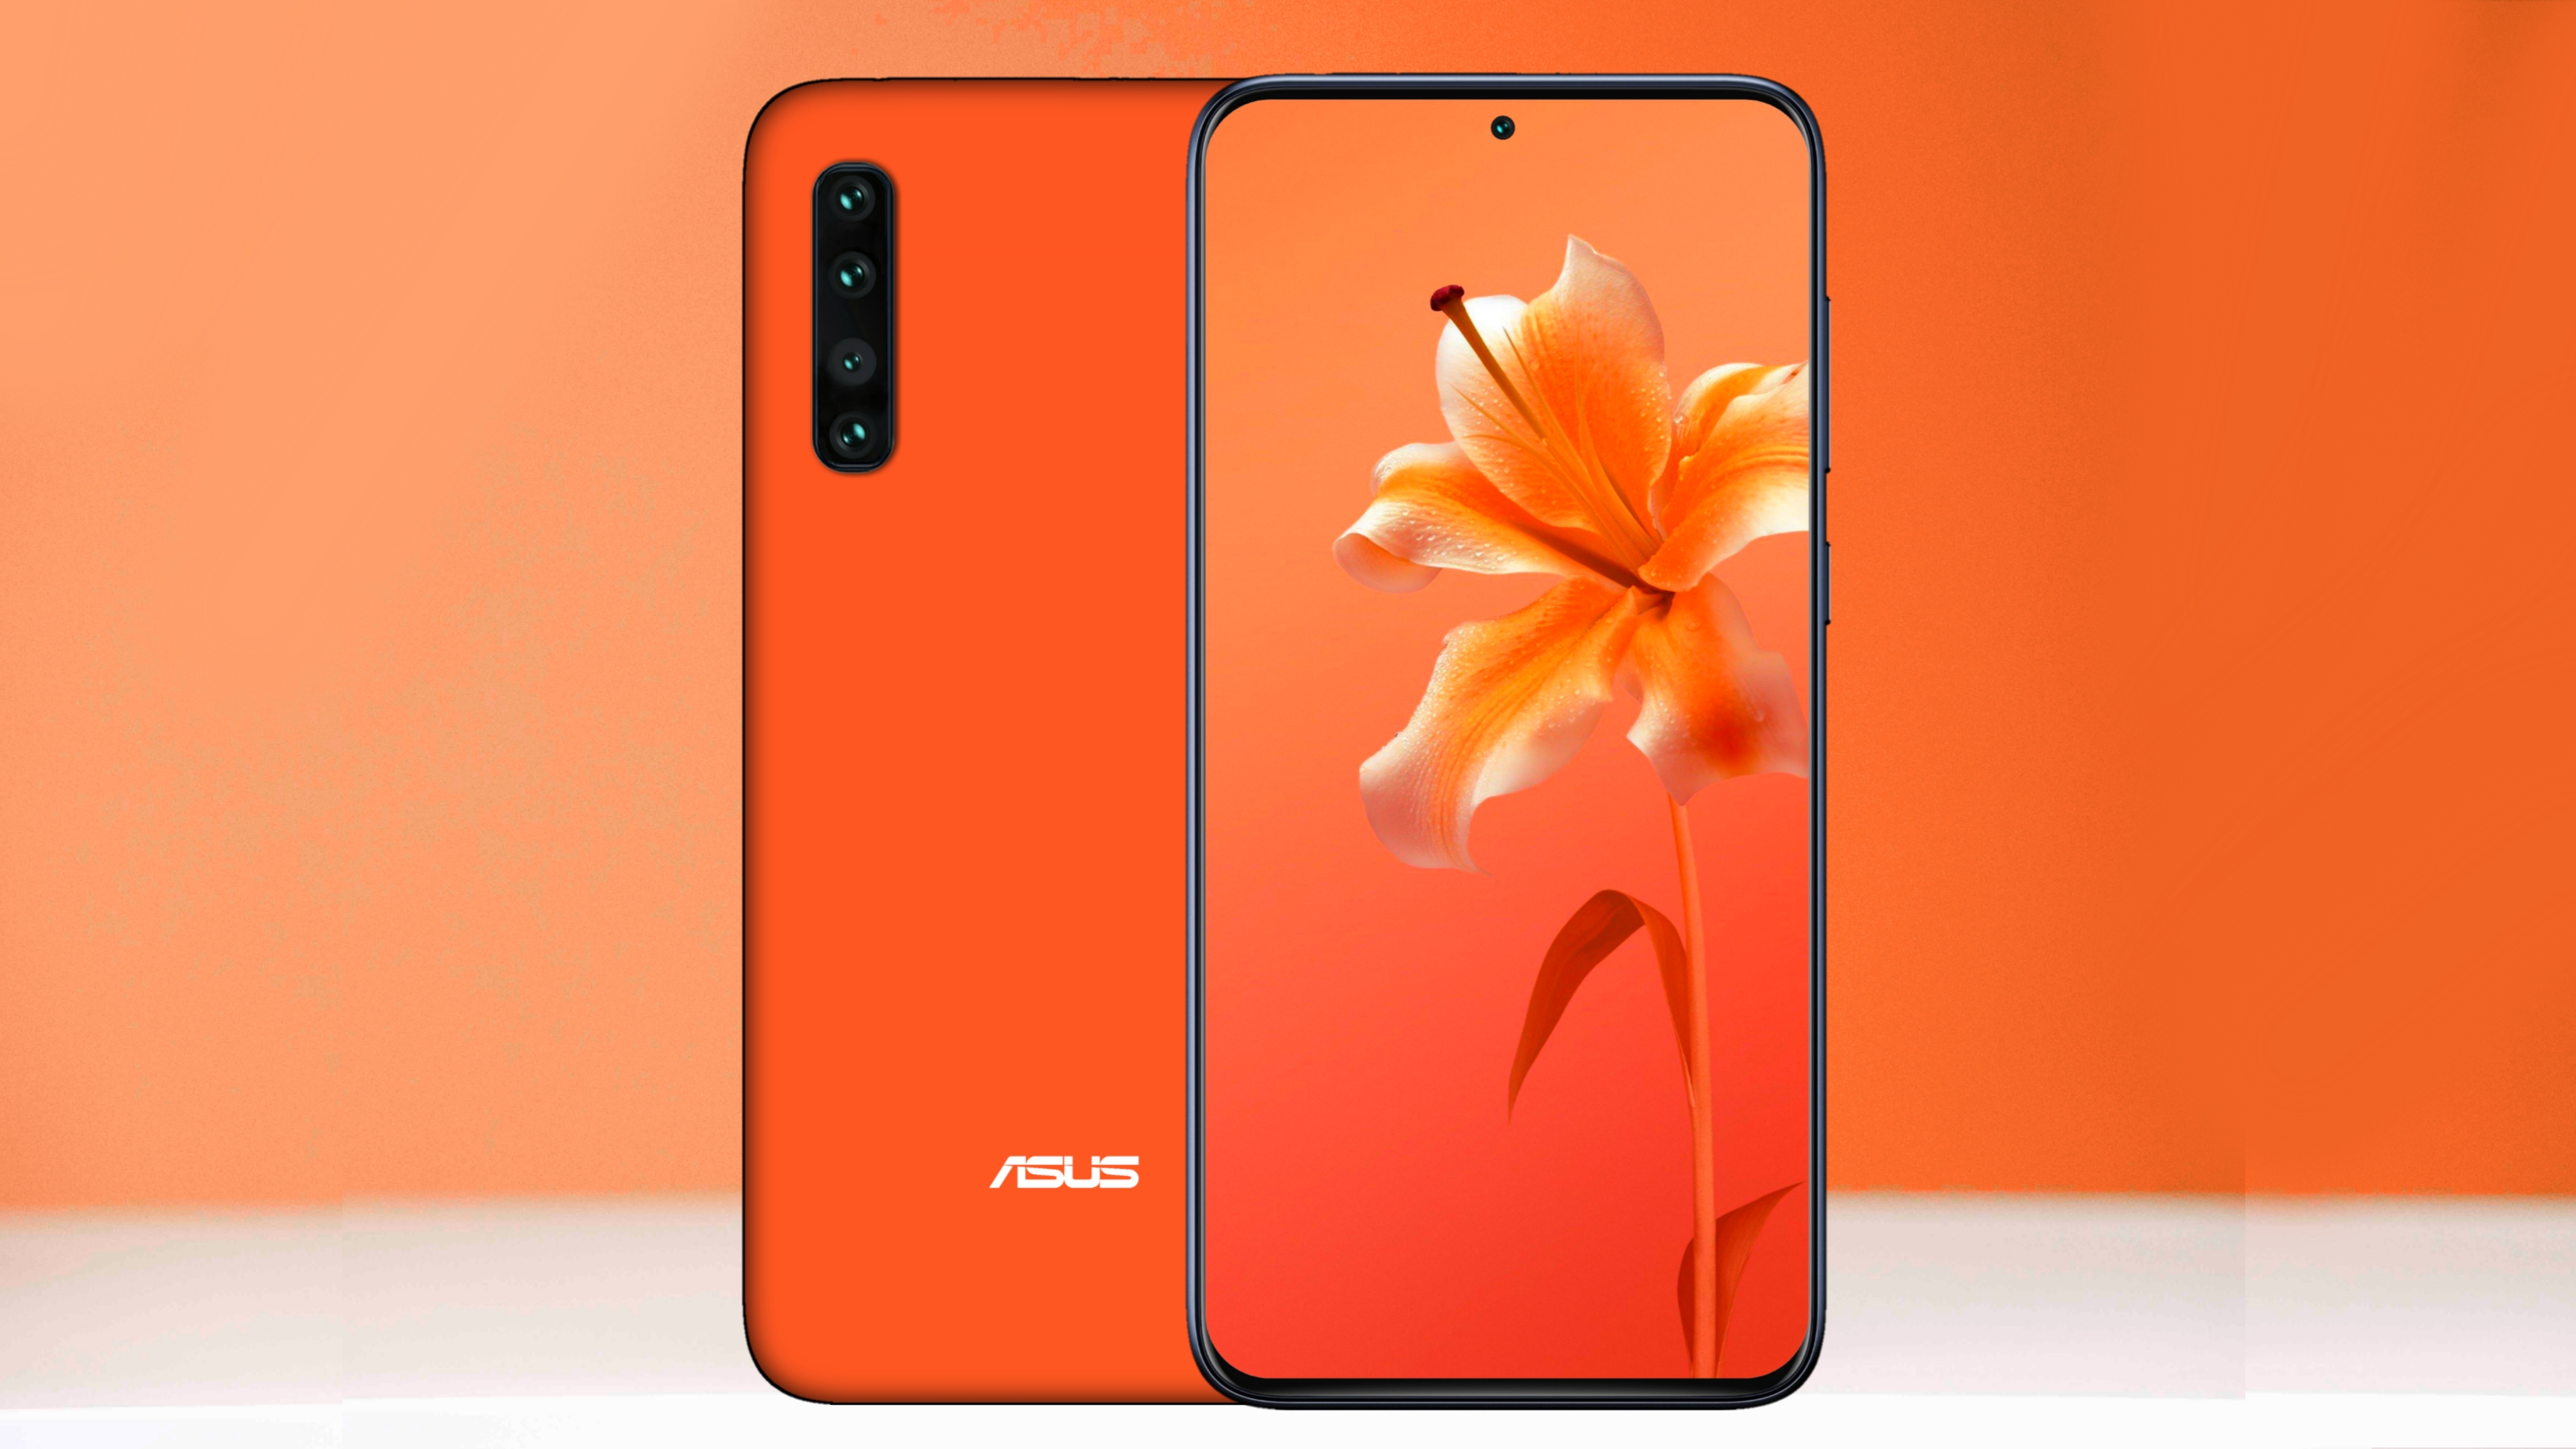 Asus Zenfone Max Pro ME 5G - Detailed Specifications, Price, Reviews